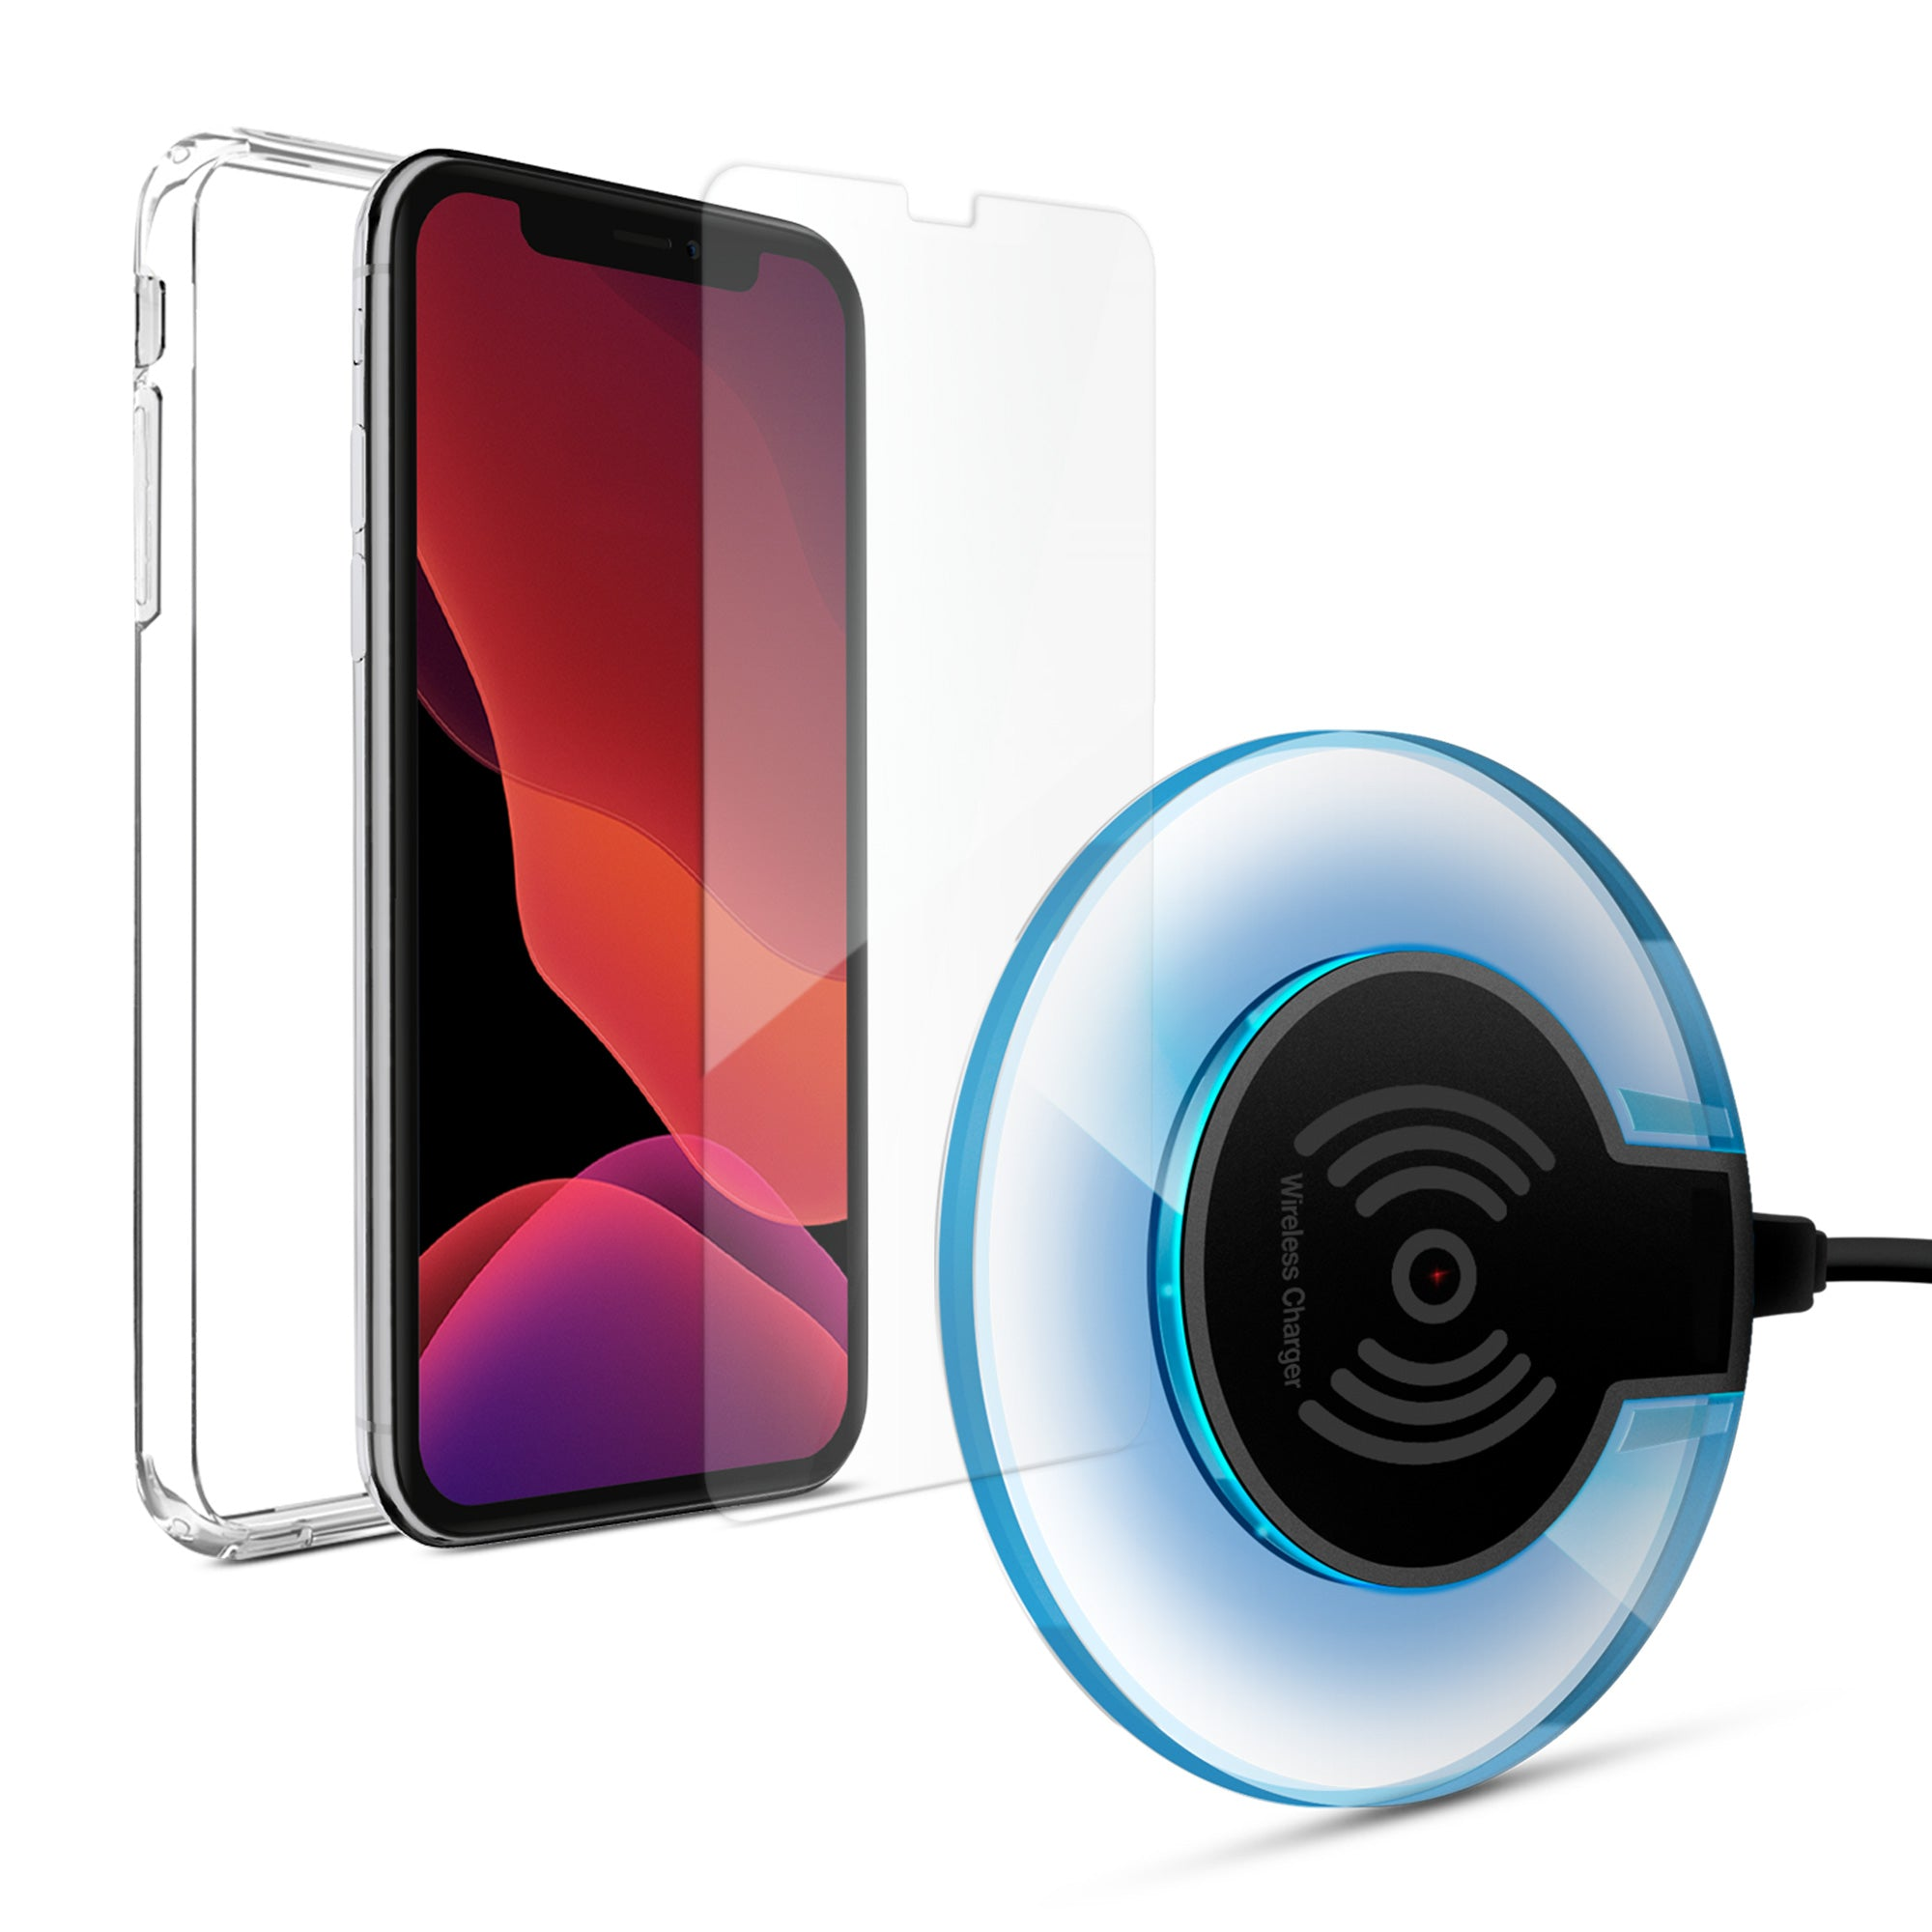 Wireless Starter Kit for iPhone 11 Pro